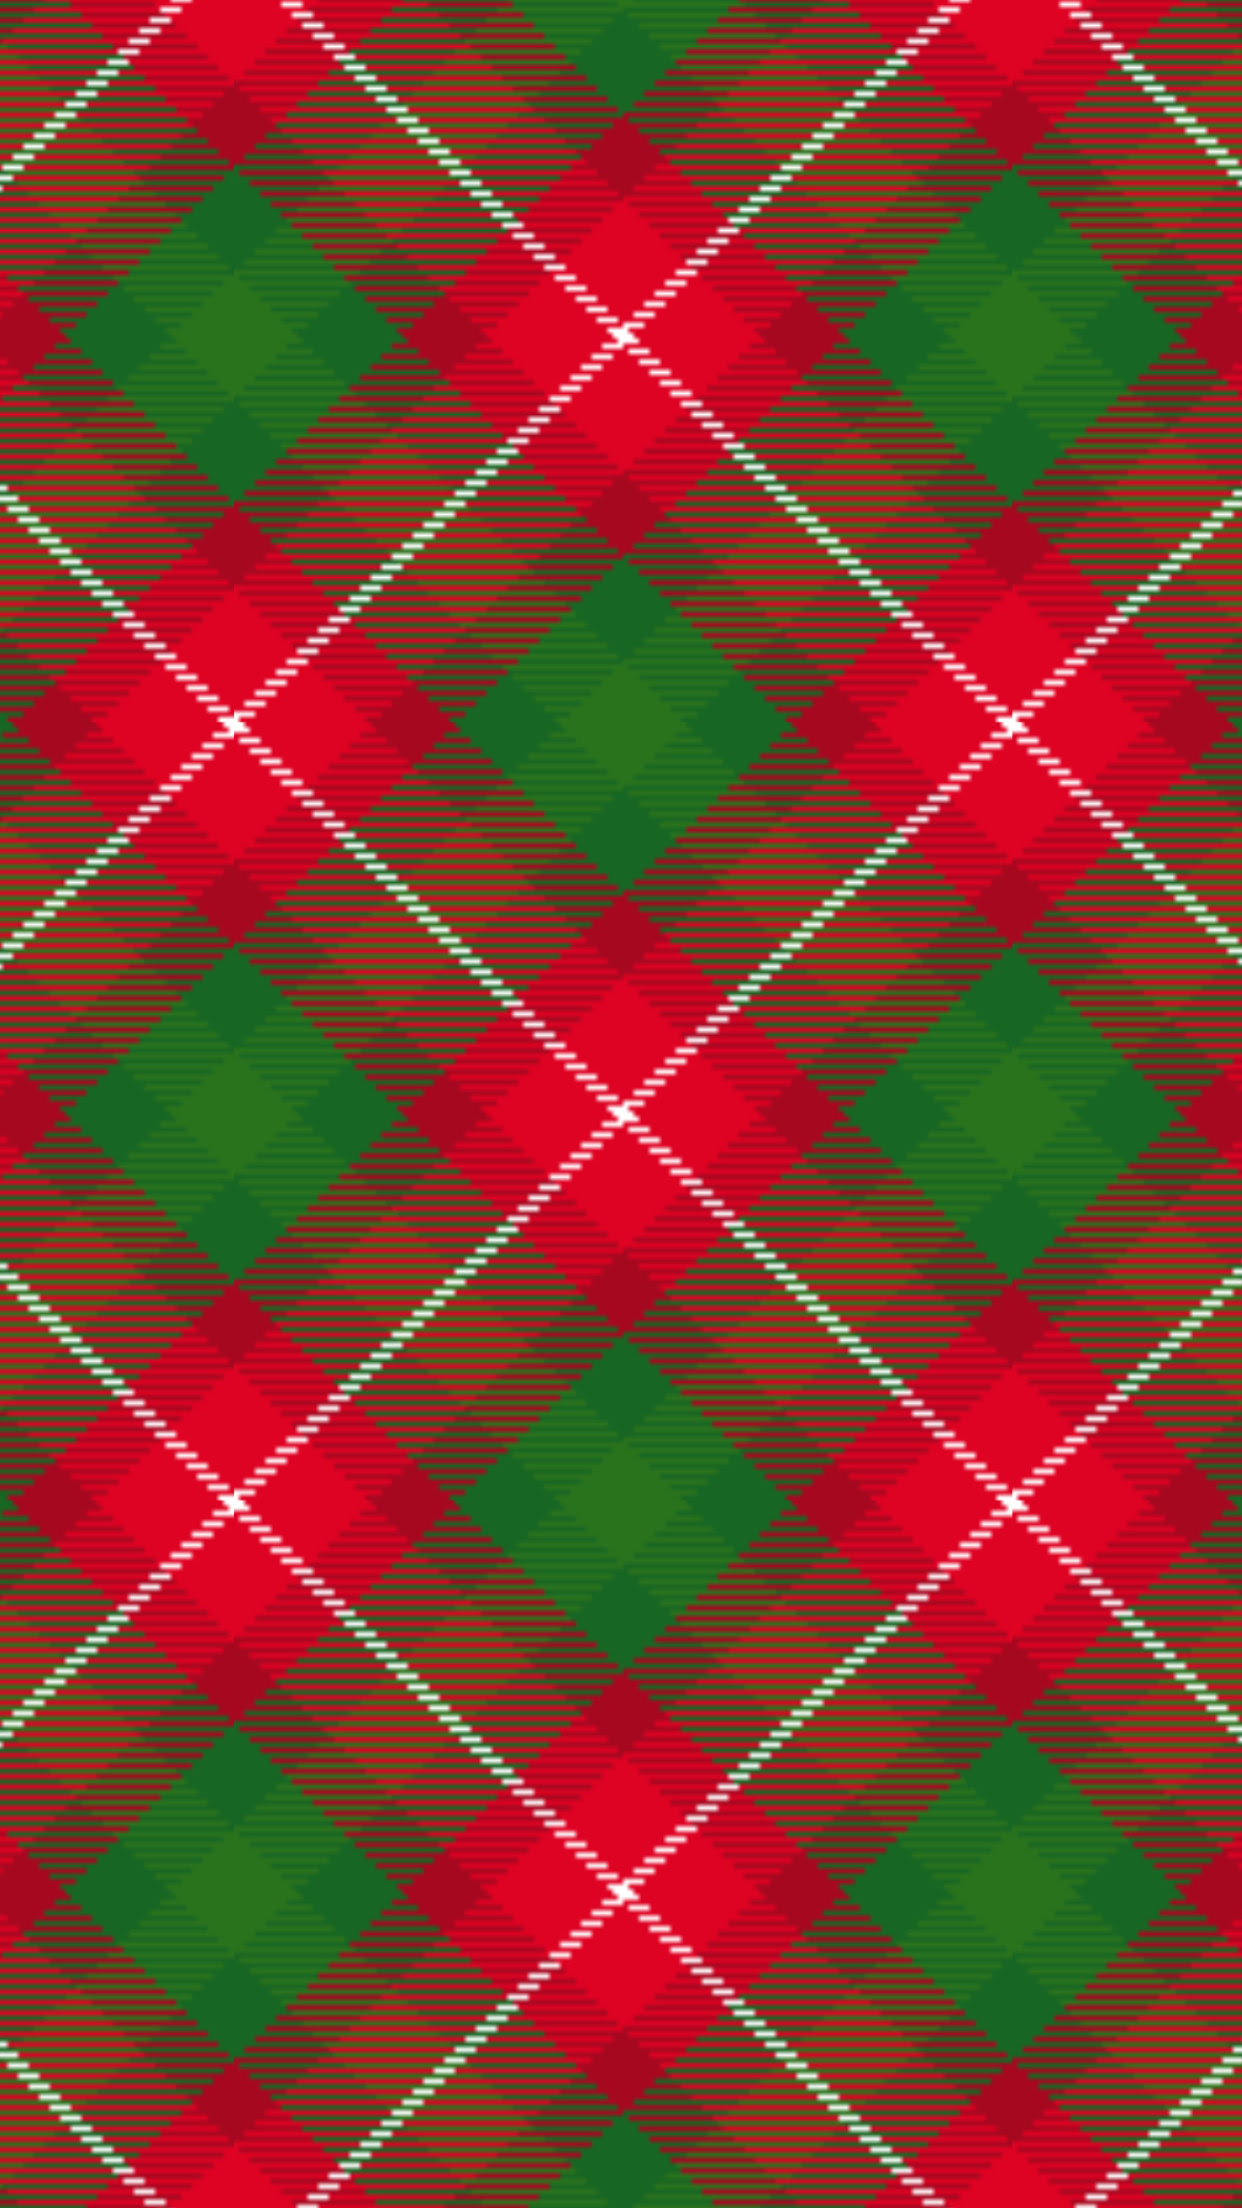 Red And Green Plaid Wallpaper 41 Images